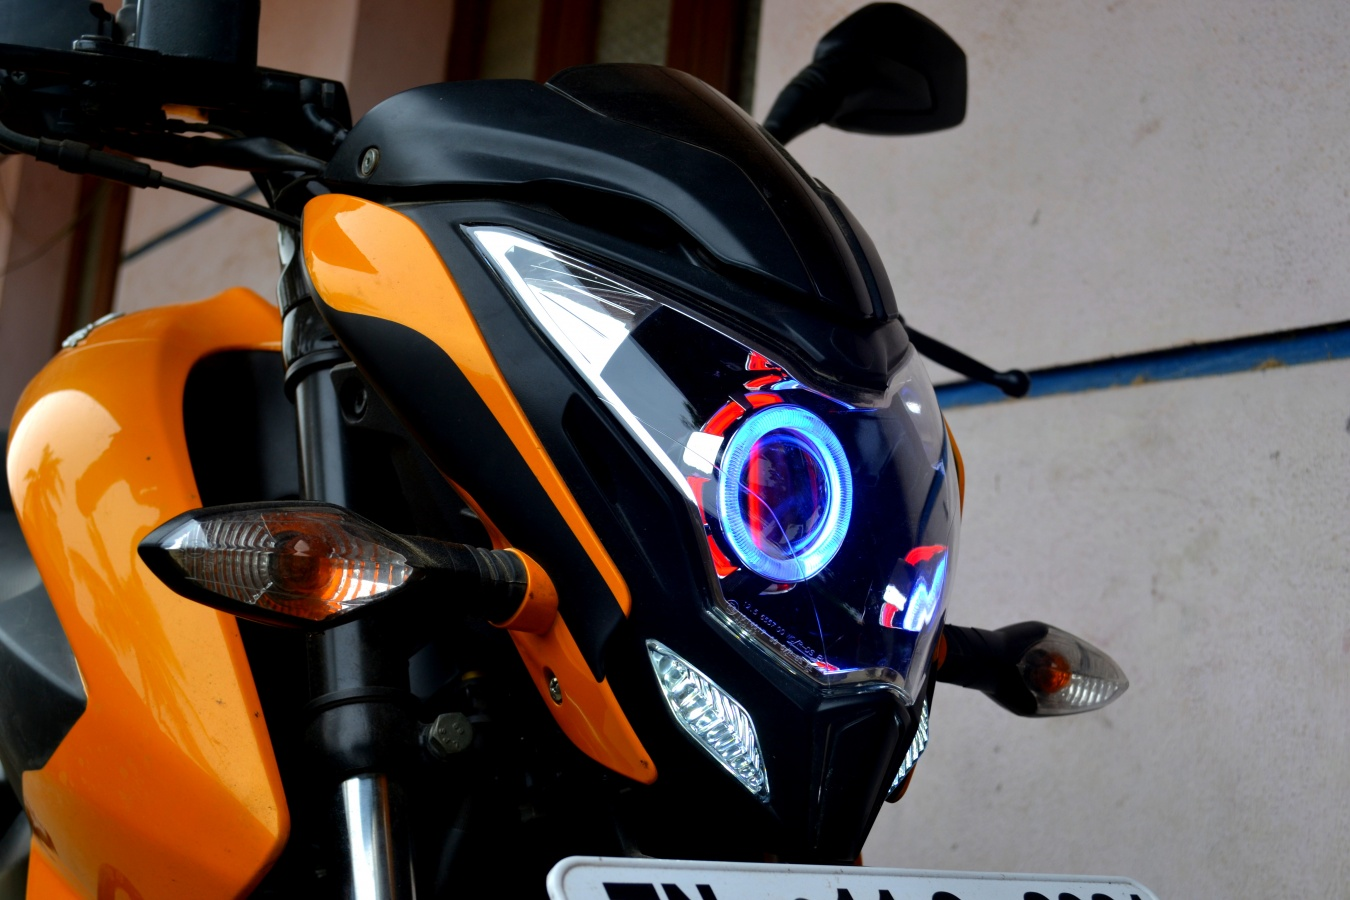 Hunk Modified >> Pulsar 200NS Ownership Experience!! | Page 3 | India Travel Forum, BCMTouring